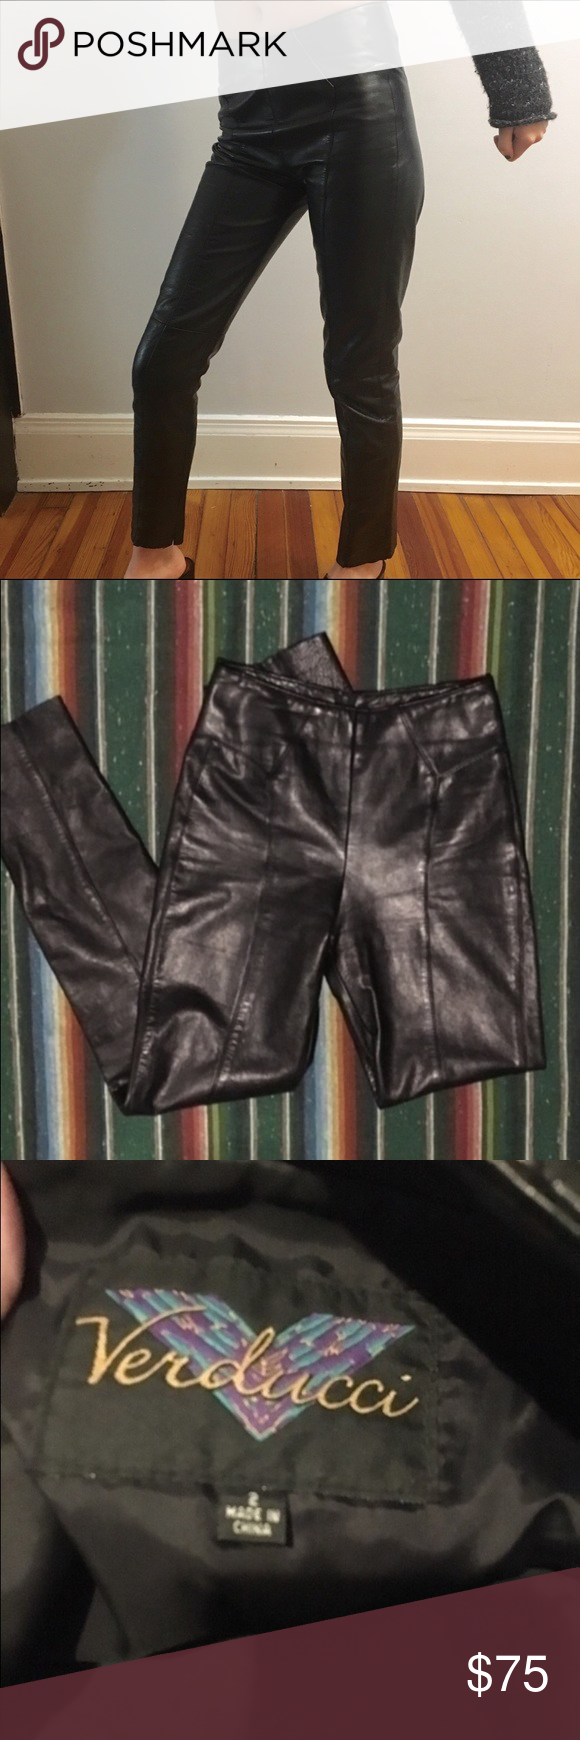 """100% Leather Vintage Skinny Pants AMAZING buttery-soft 100% leather vintage Verducci pants. Skinny fit, very tight and formfitting. Zipper in the back. The lining is 100% nylon and makes them very comfortable, but they are 100% leather so don't expect to be able to do the splits in them :)  The tag says size 2, which translates to a modern 00.  ***   ***   *** Measurements: Waist- 24/25"""" Hips- 35/36"""" Rise- 10.5"""" Inseam- 30"""" Vintage Pants Skinny"""